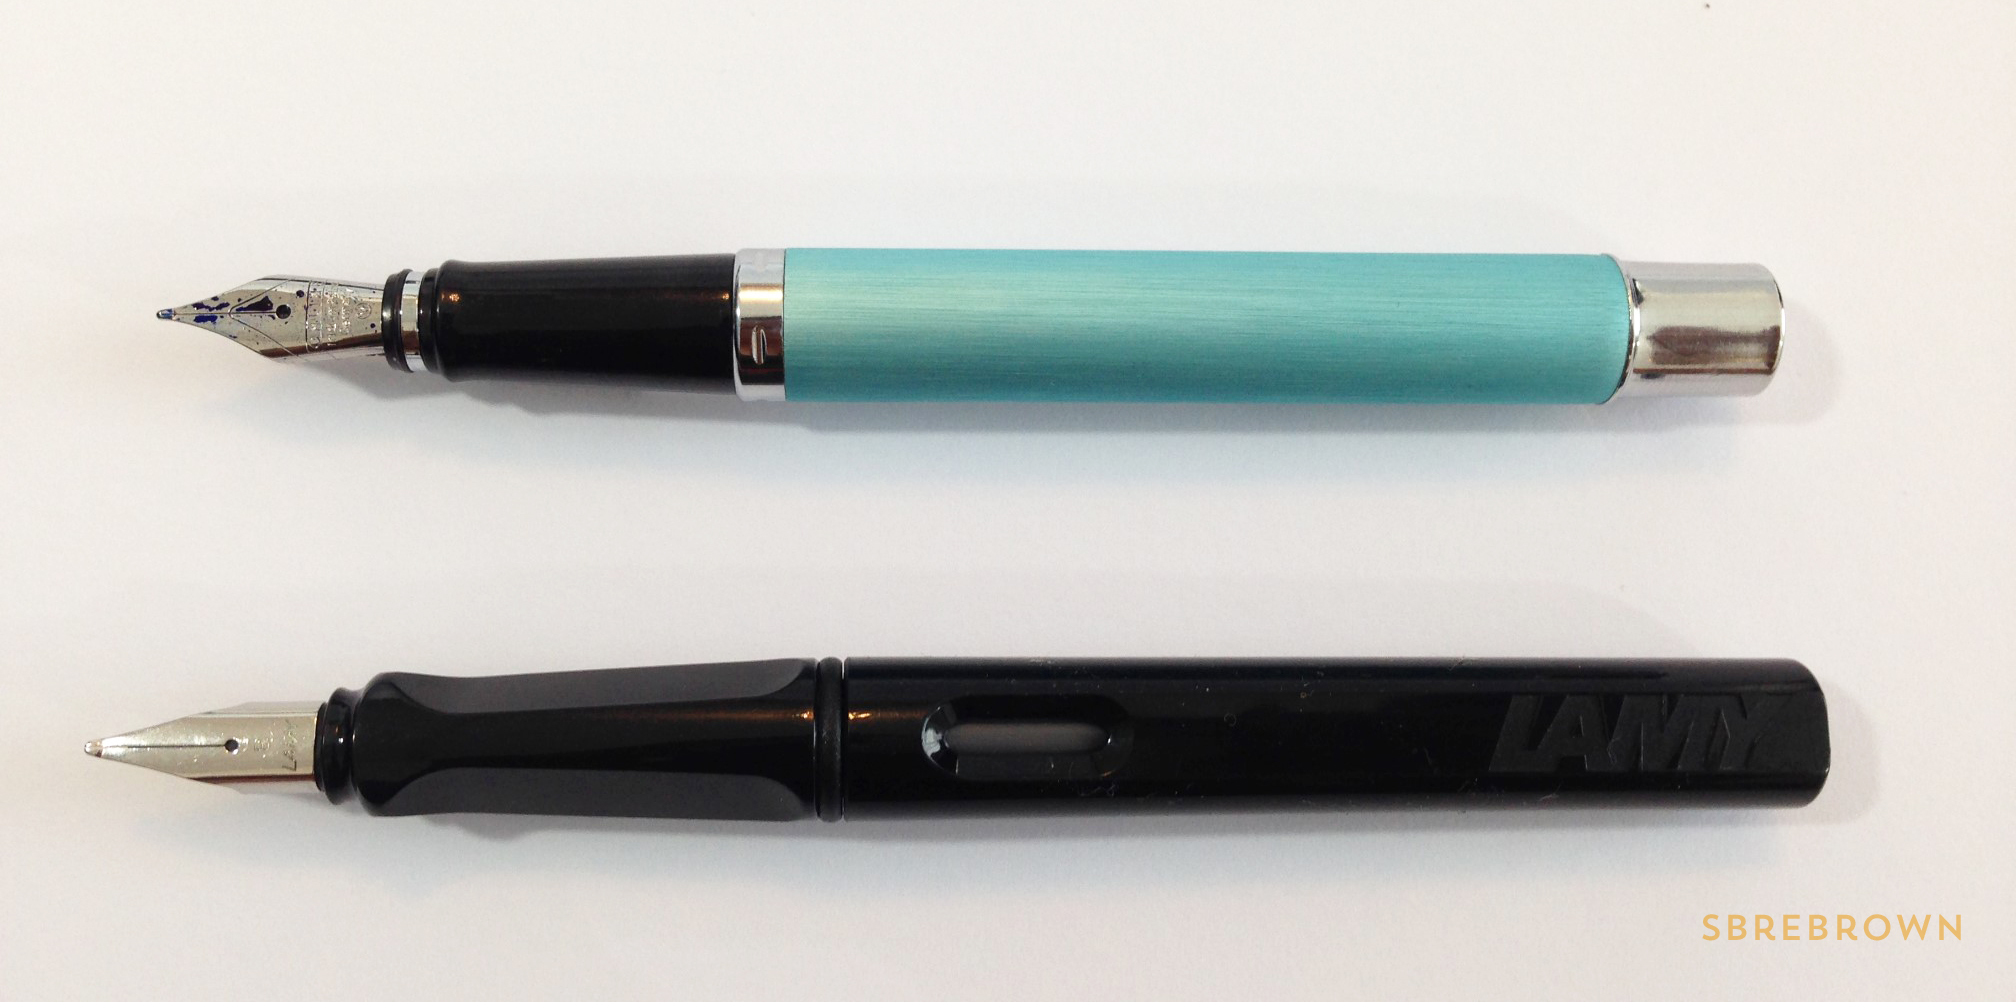 SB. Pen Heaven Abruzzi Journal & Online Vision FP Review (3)